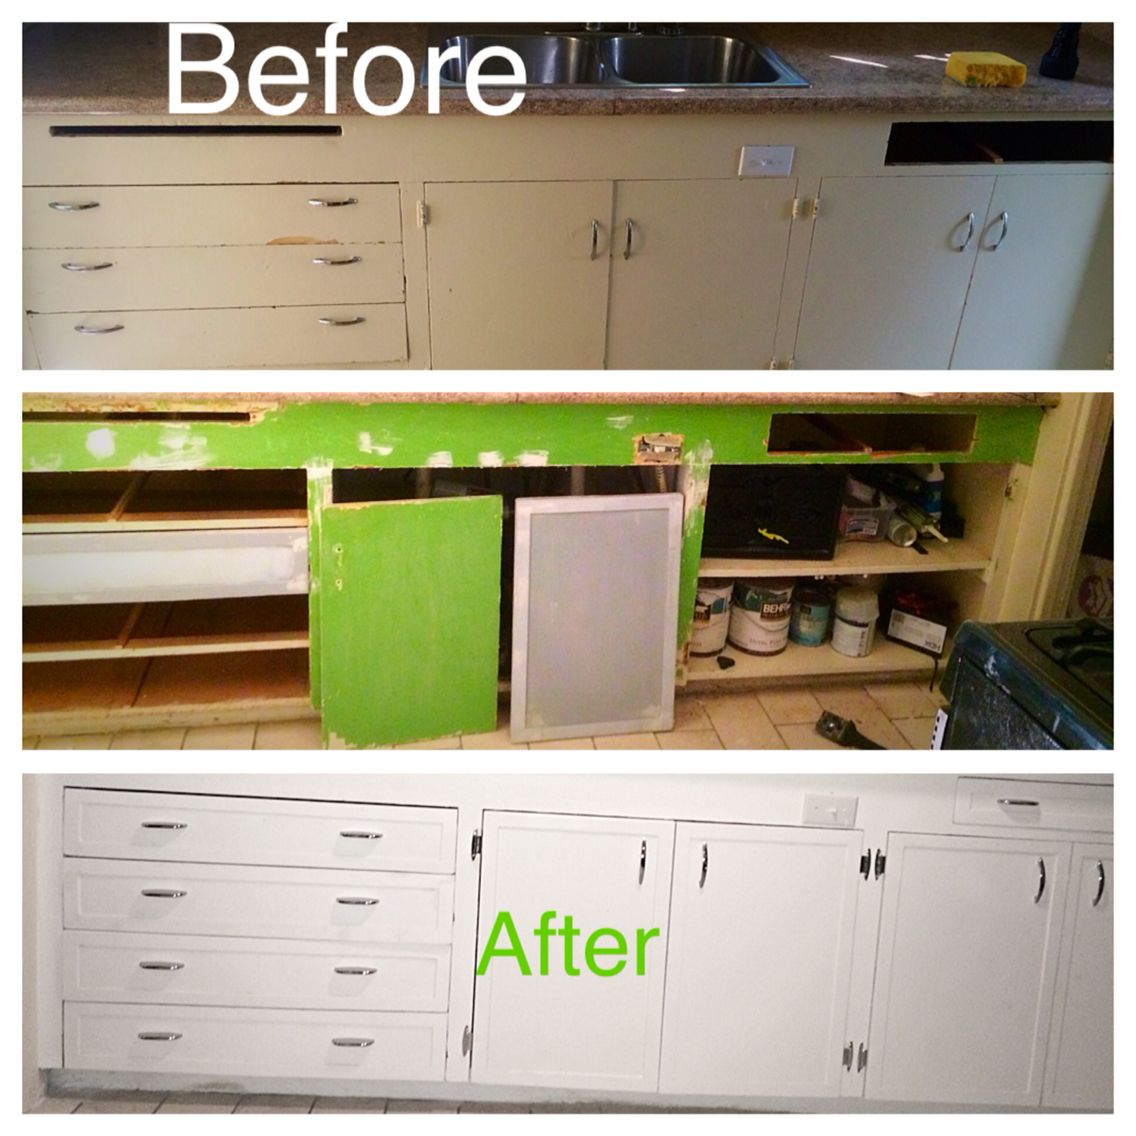 Kitchen Cabinet Door Trim: Adding Flat Trim To Cabinet Doors And Drawers Is The Most